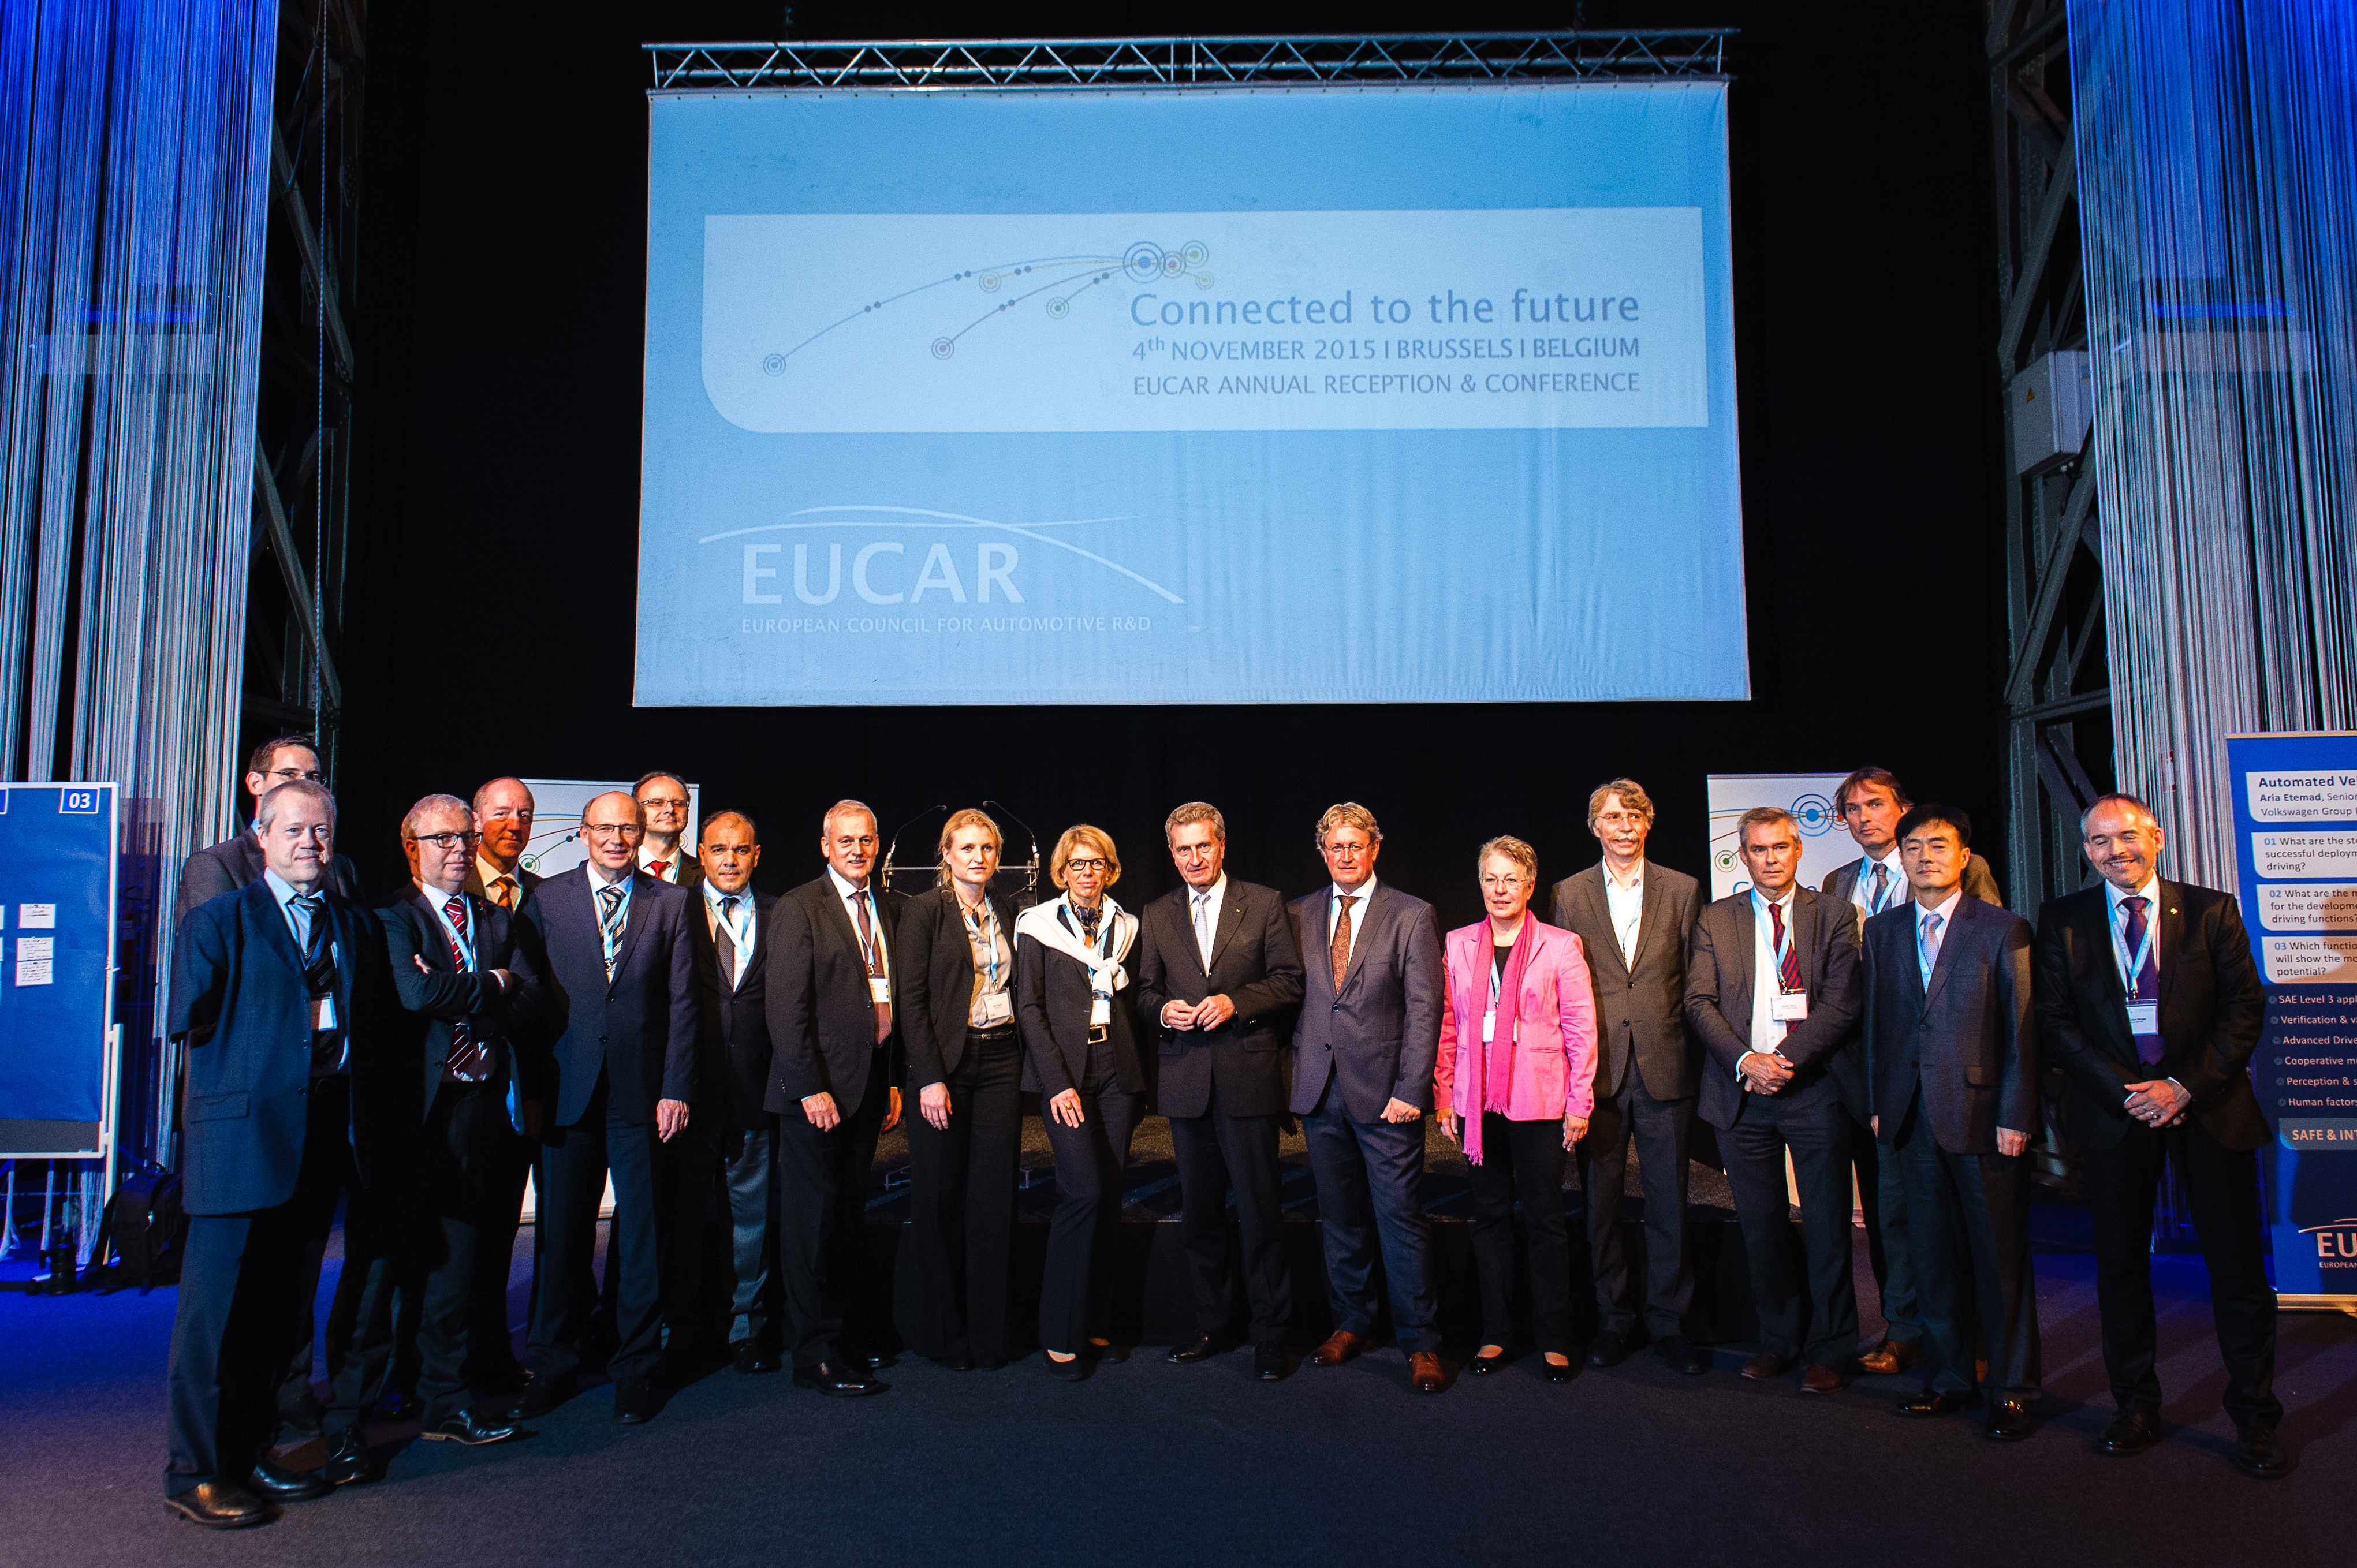 EUCAR Conference and Reception 4th November 2015